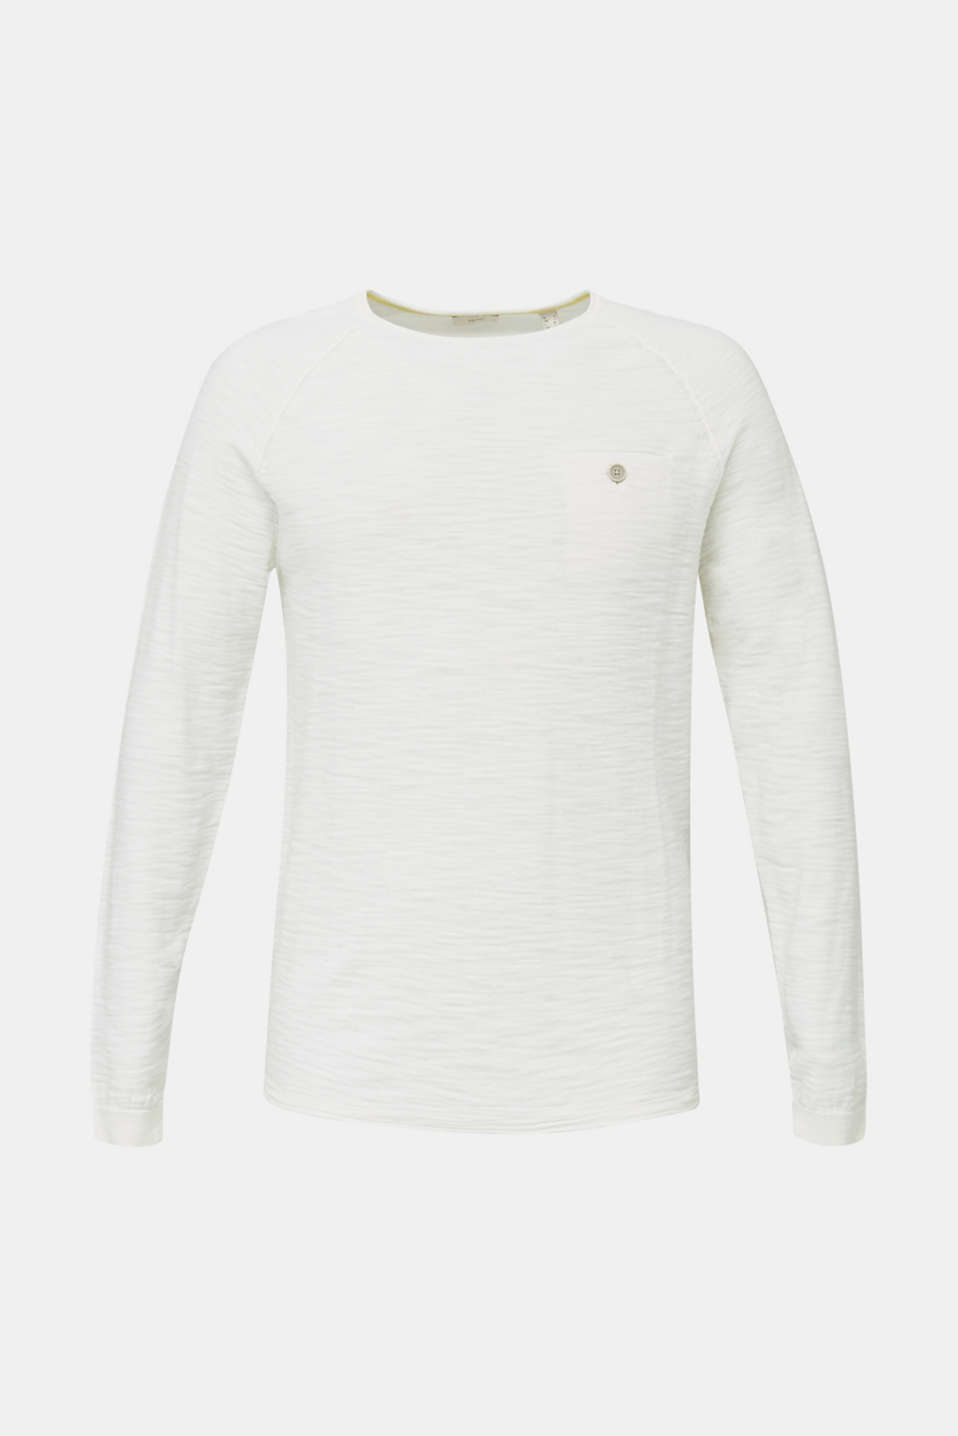 Jumper with a pocket, 100% cotton, OFF WHITE, detail image number 7